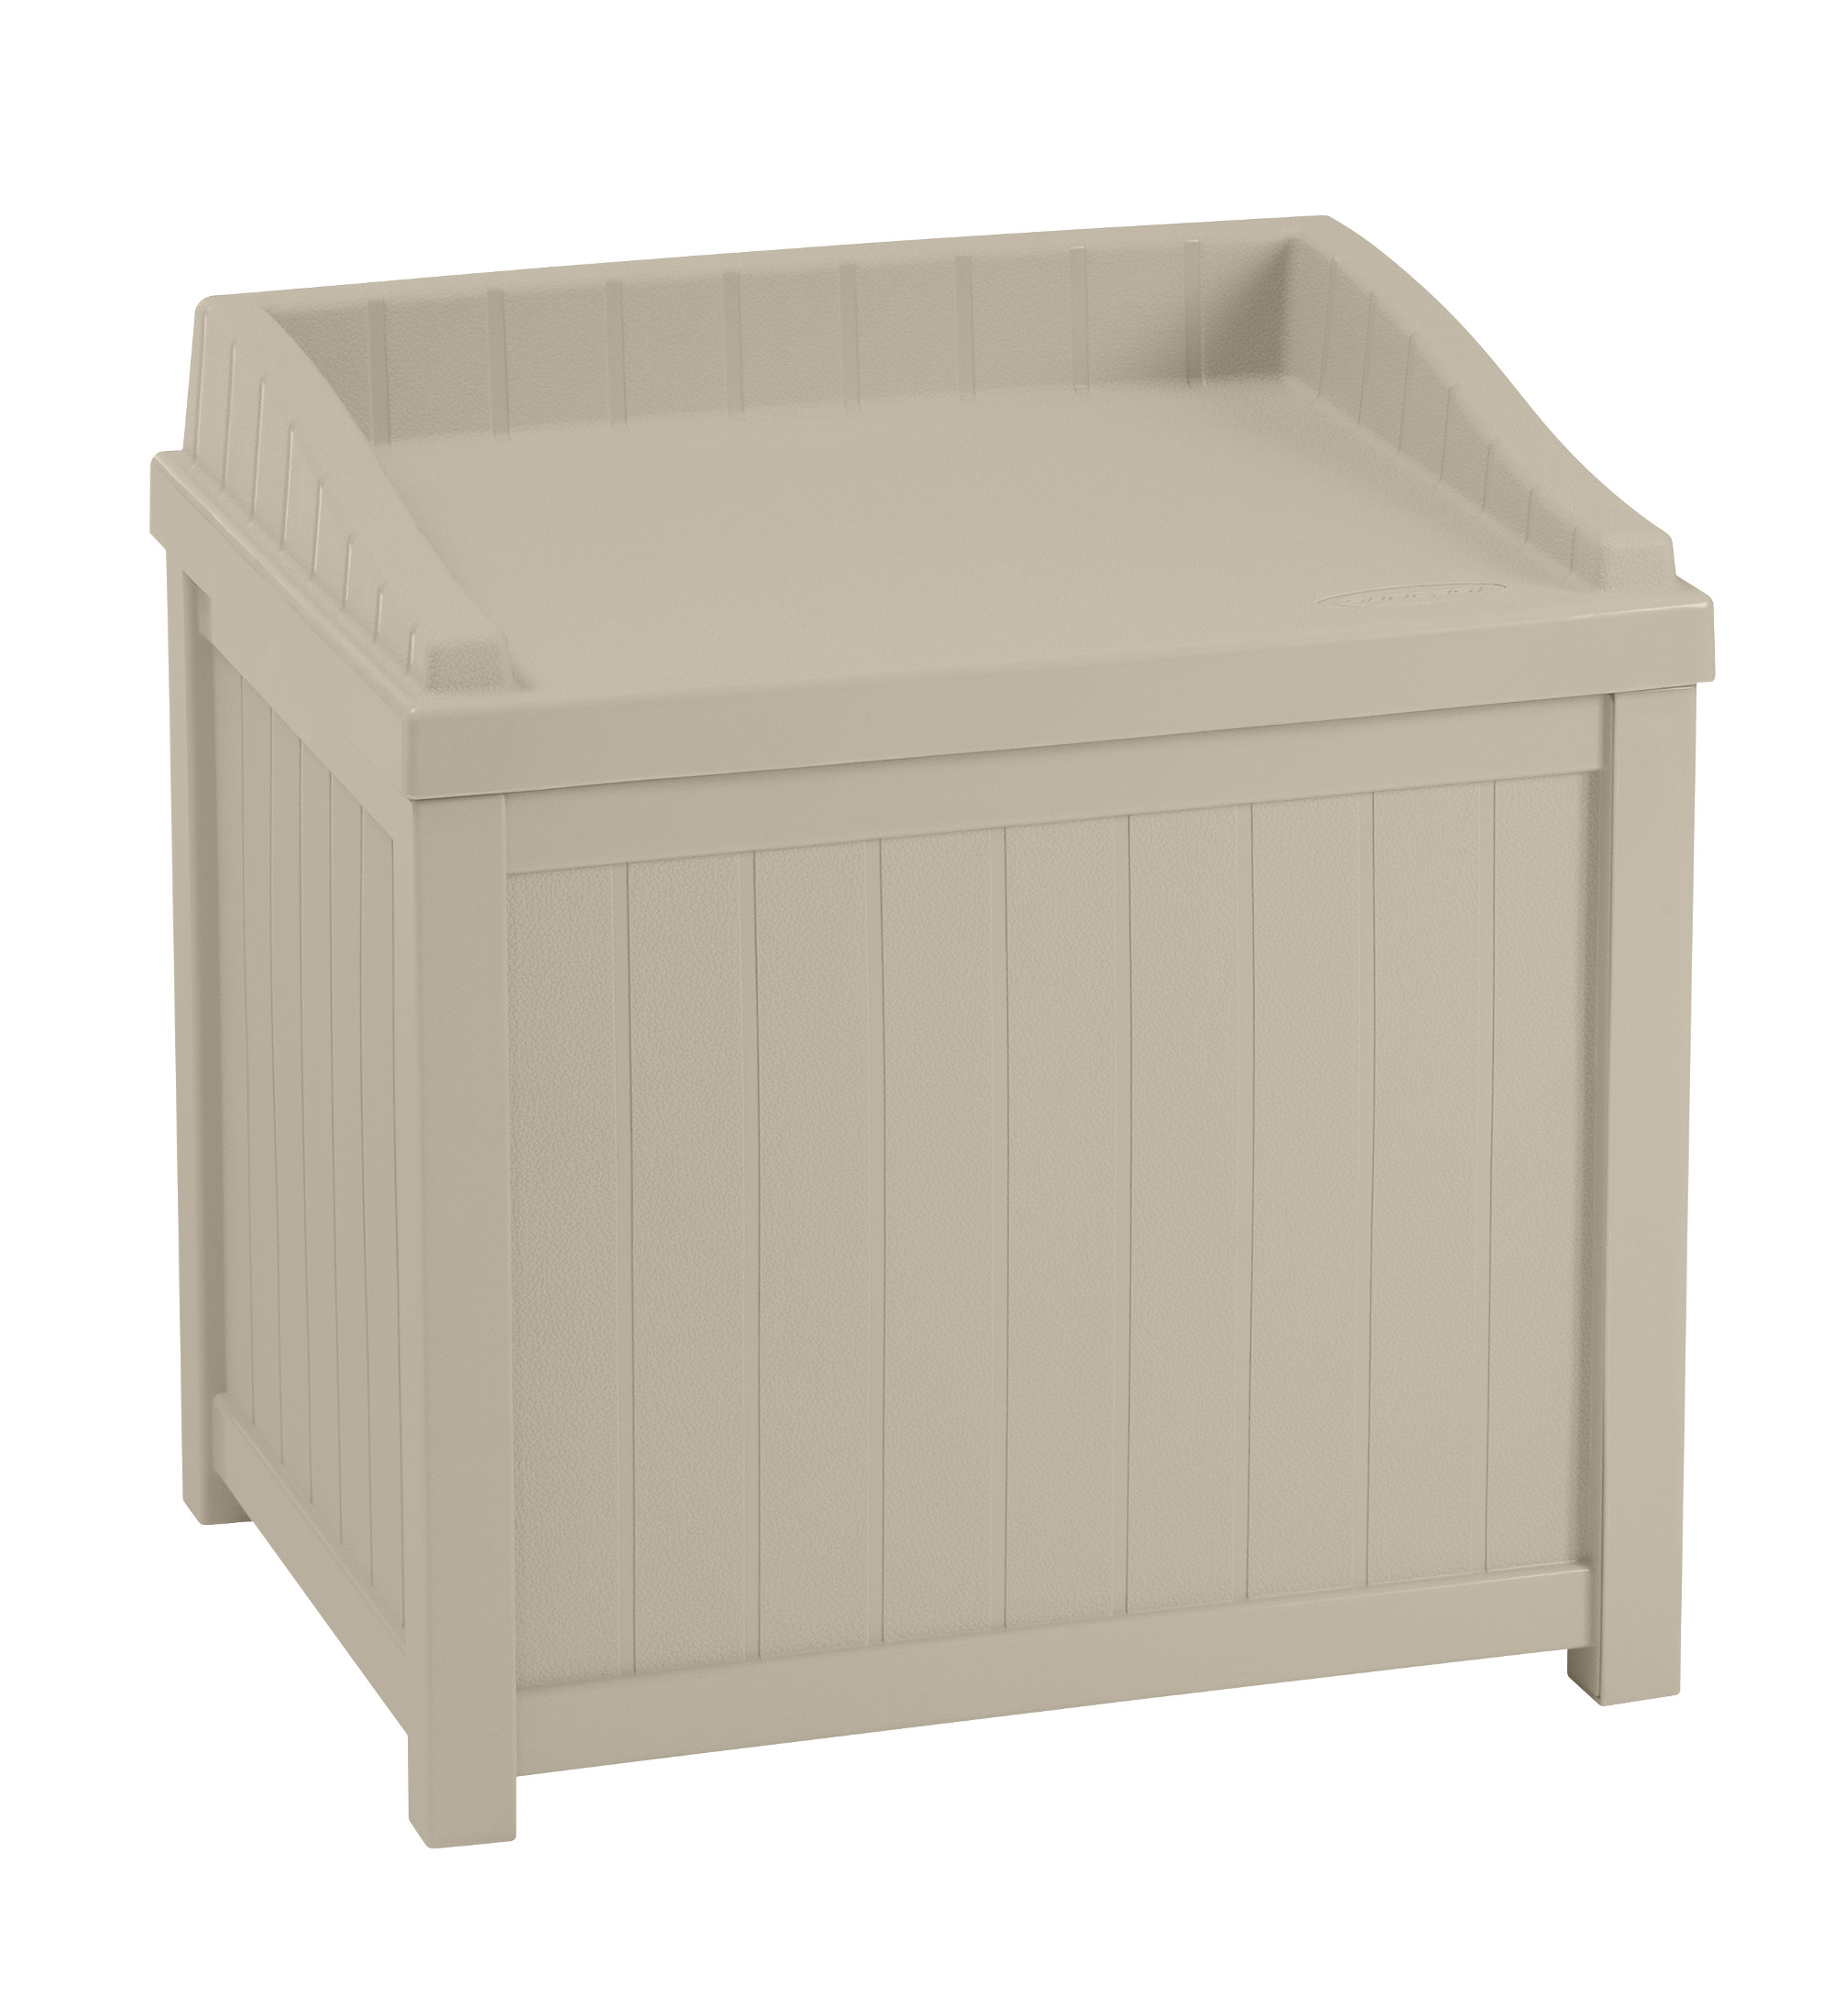 Suncast 22 Gallon Deck Box With Seat Light Taupe Ss1000